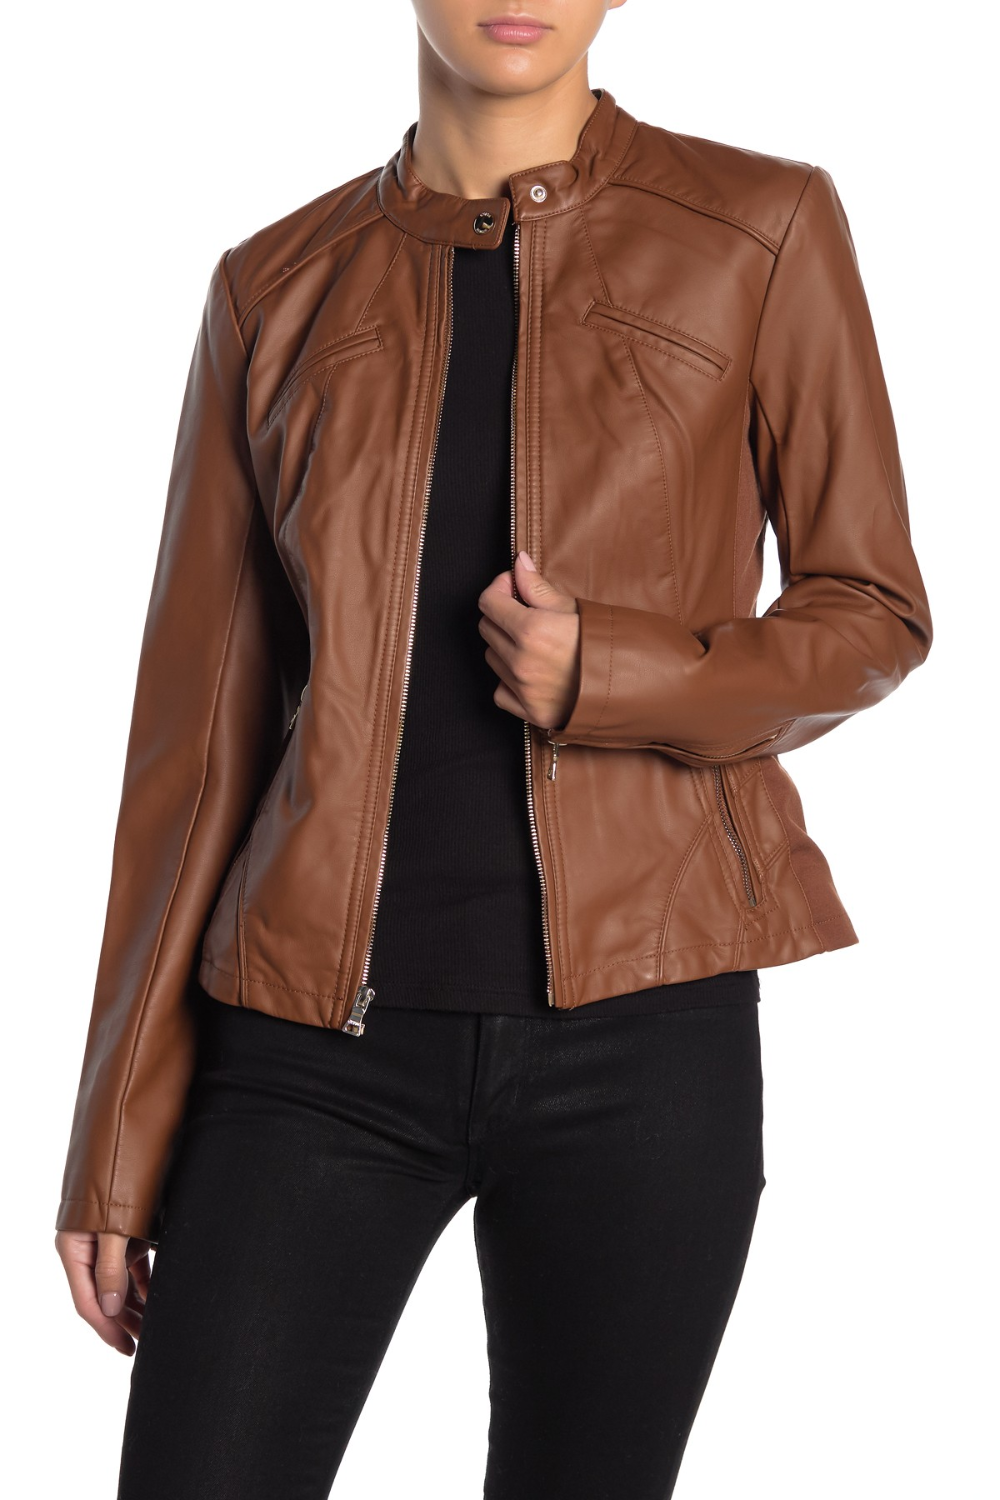 GUESS Faux Leather Jacket (With images) Leather jacket